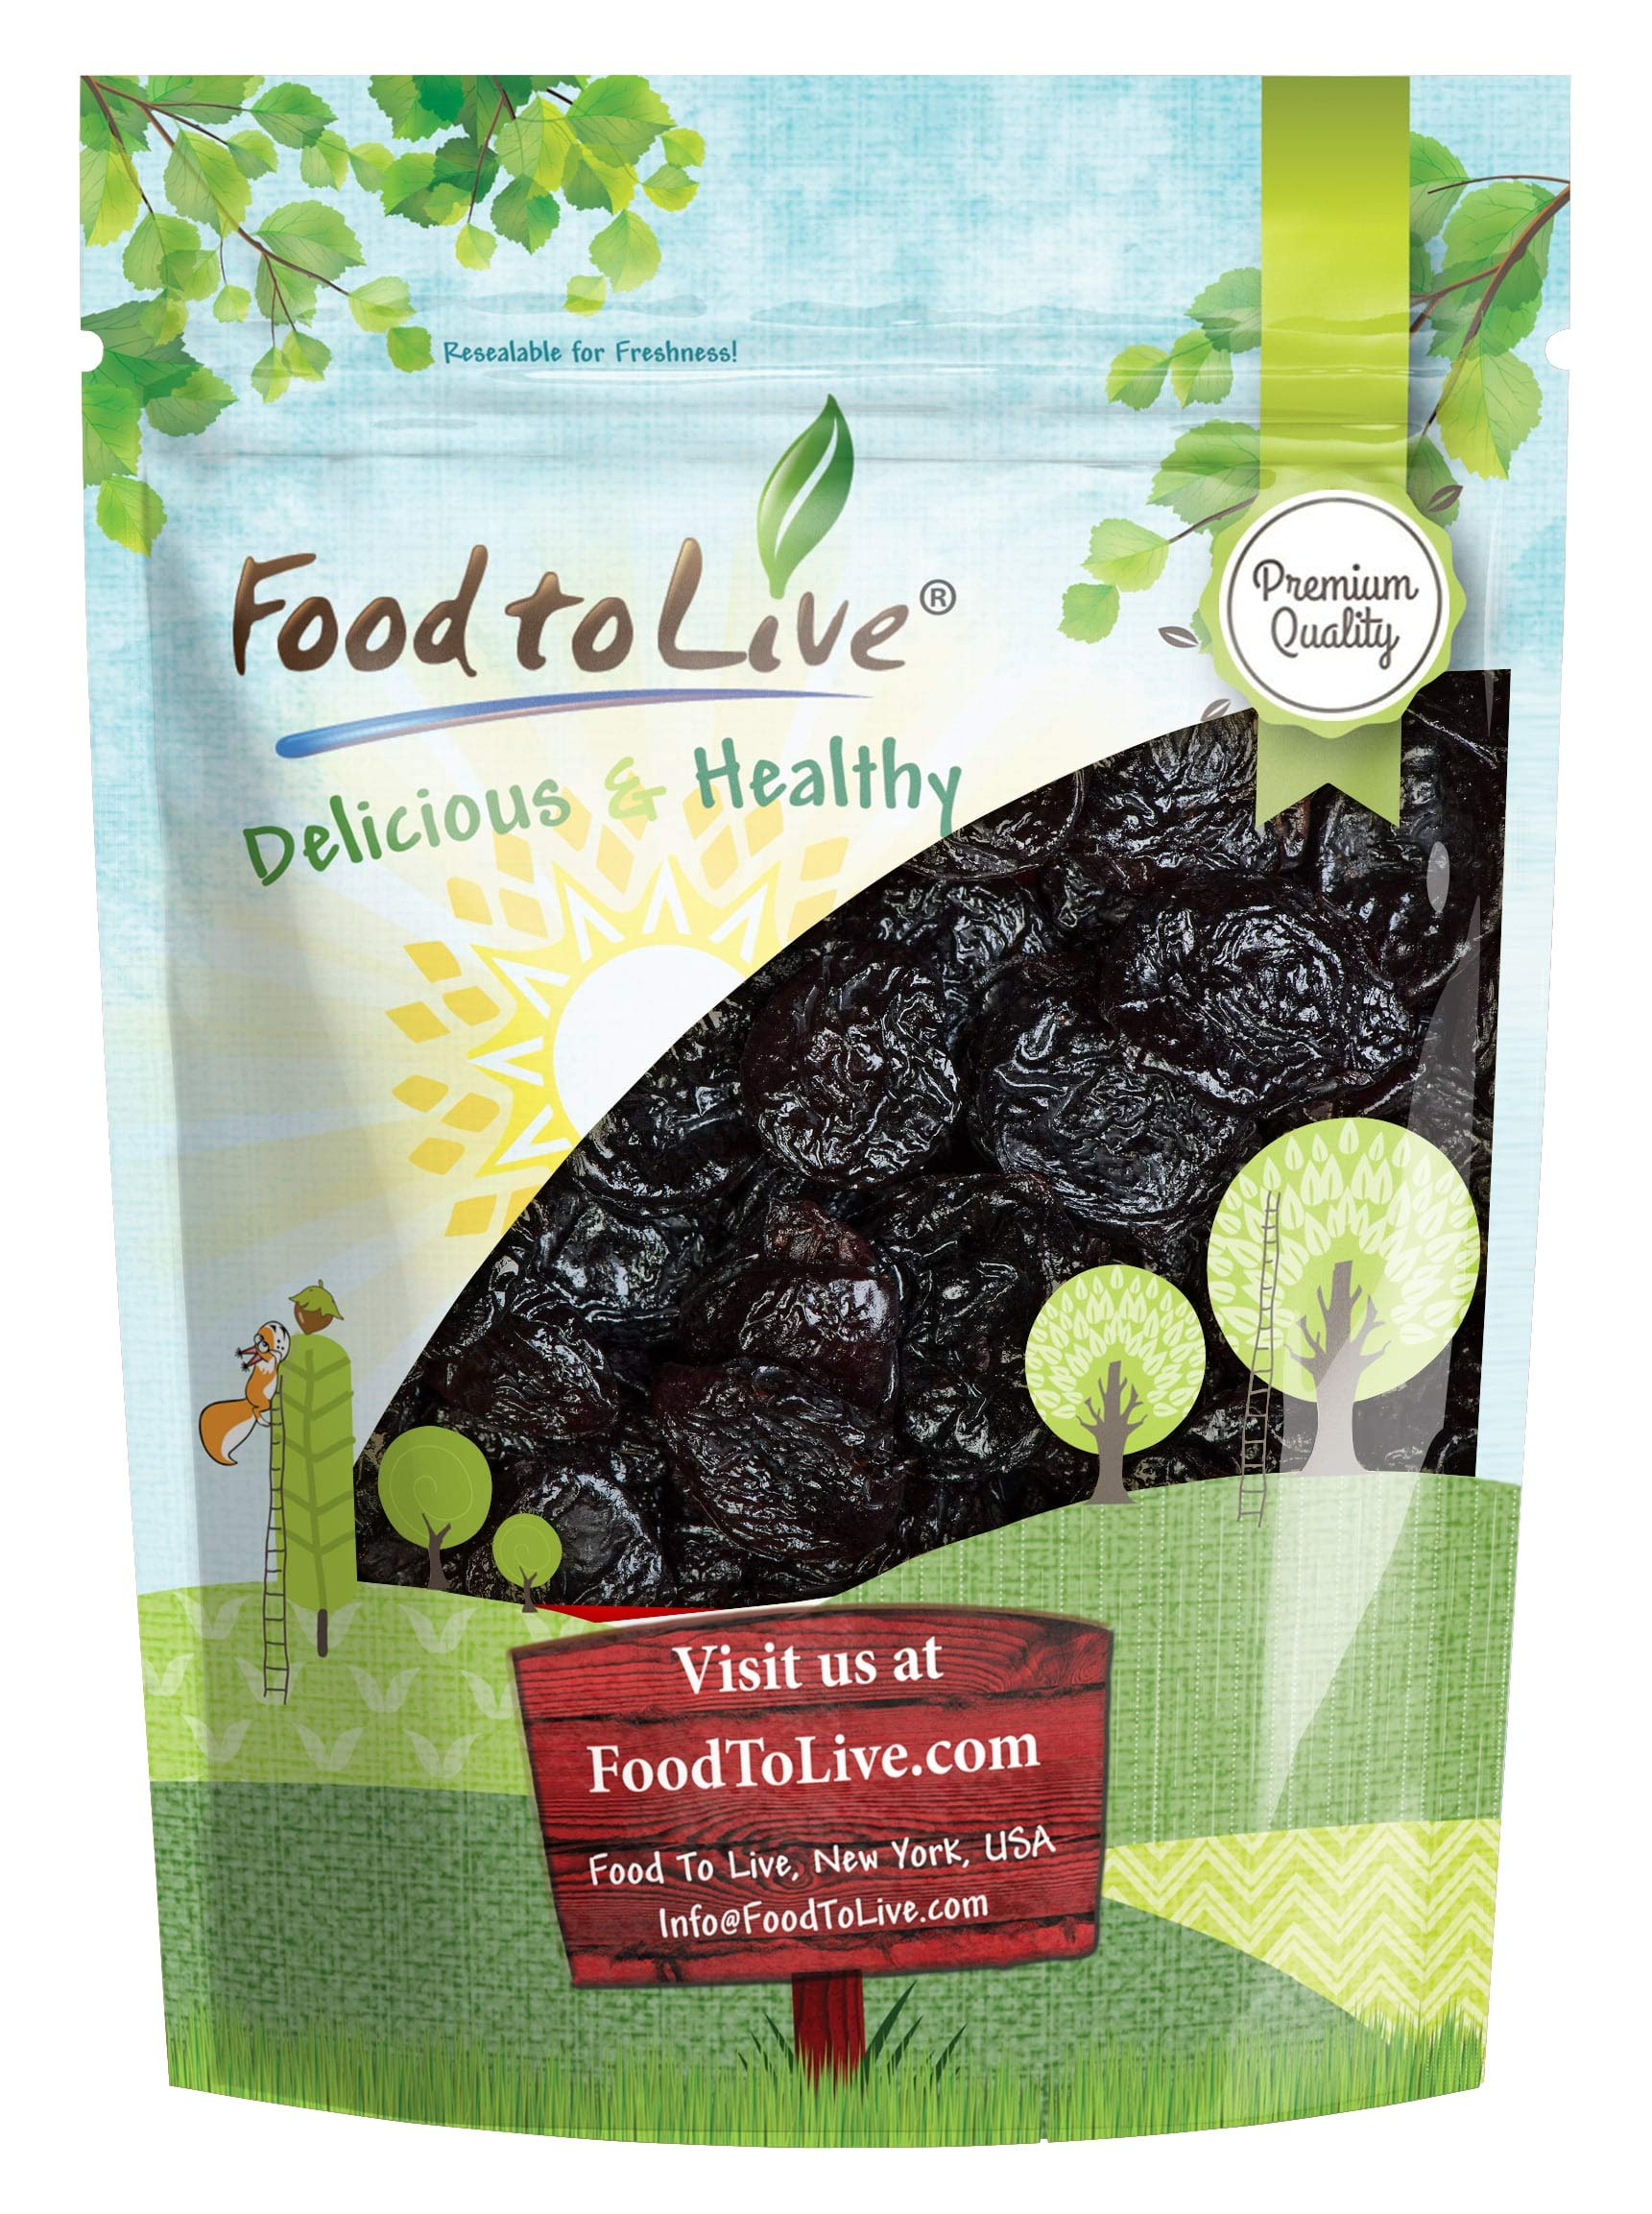 Pitted Prunes, 1 Pound — Whole Dried Plums, Unsulfured, Unsweetened, Non-Infused, Non-Oil Added, Non-Irradiated, Pesticide-Free, Vegan, Raw, Bulk